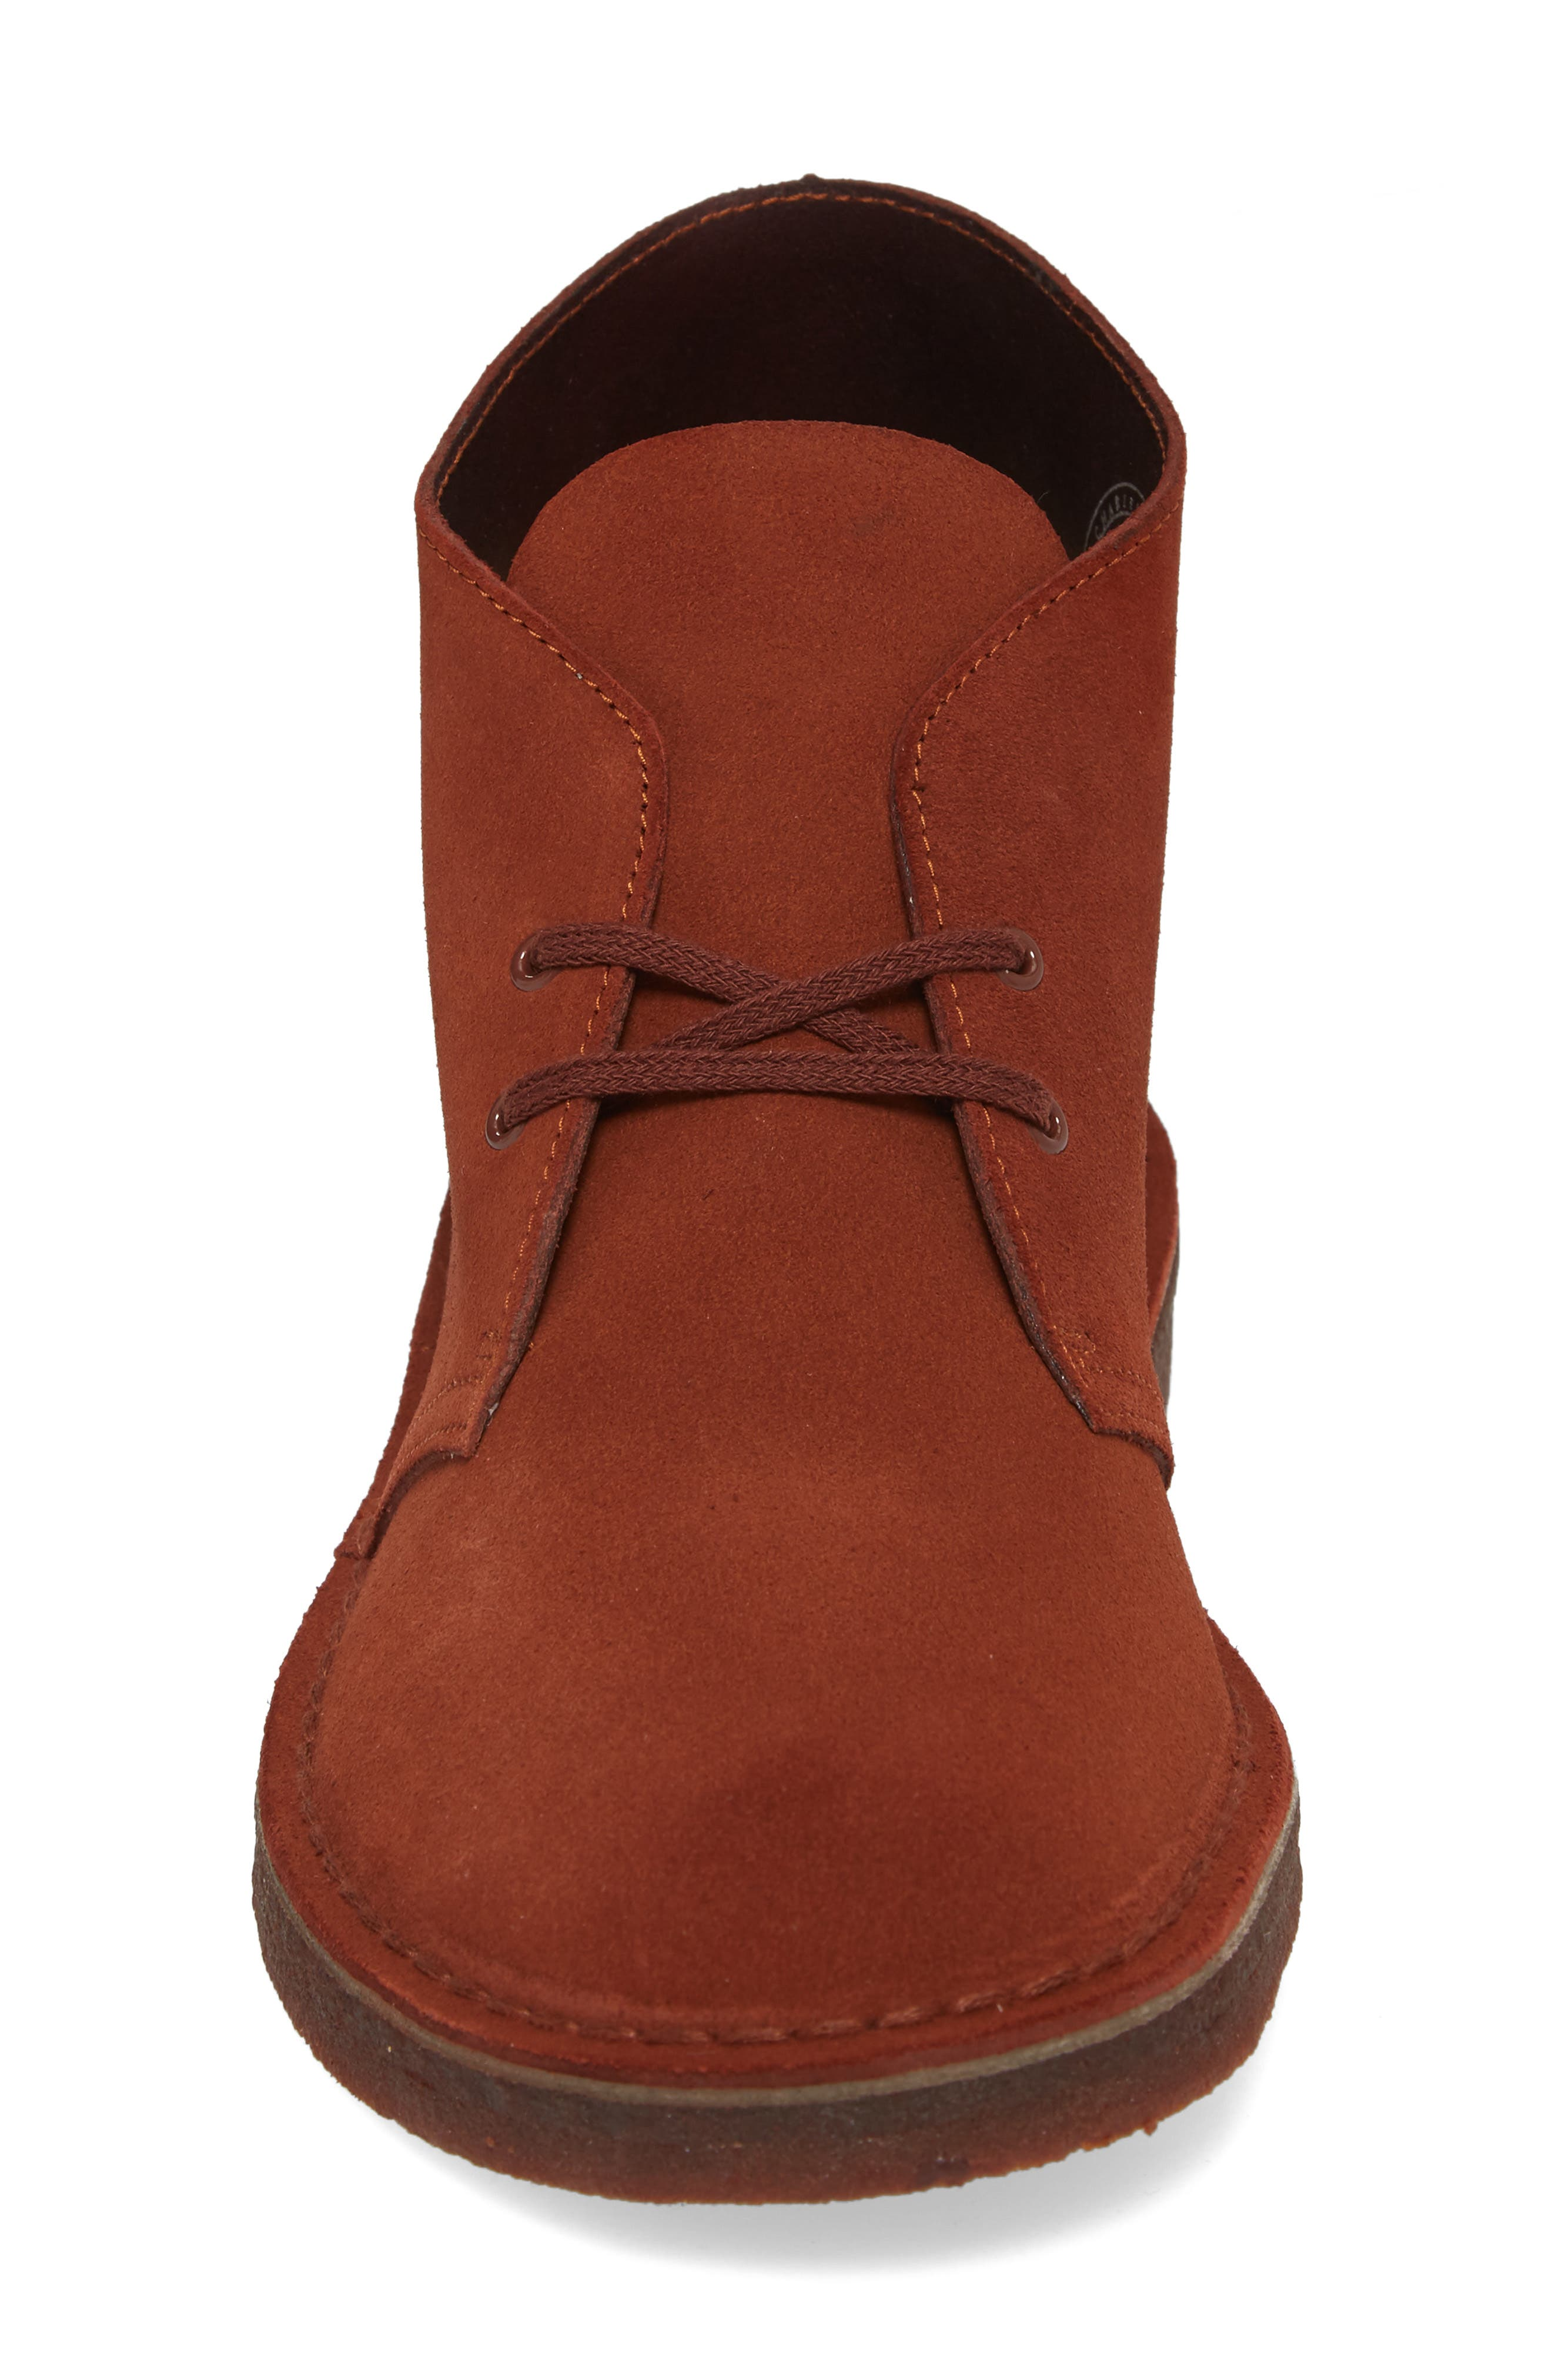 Clarks<sup>®</sup> Desert Boot,                             Alternate thumbnail 4, color,                             Mahogany Leather